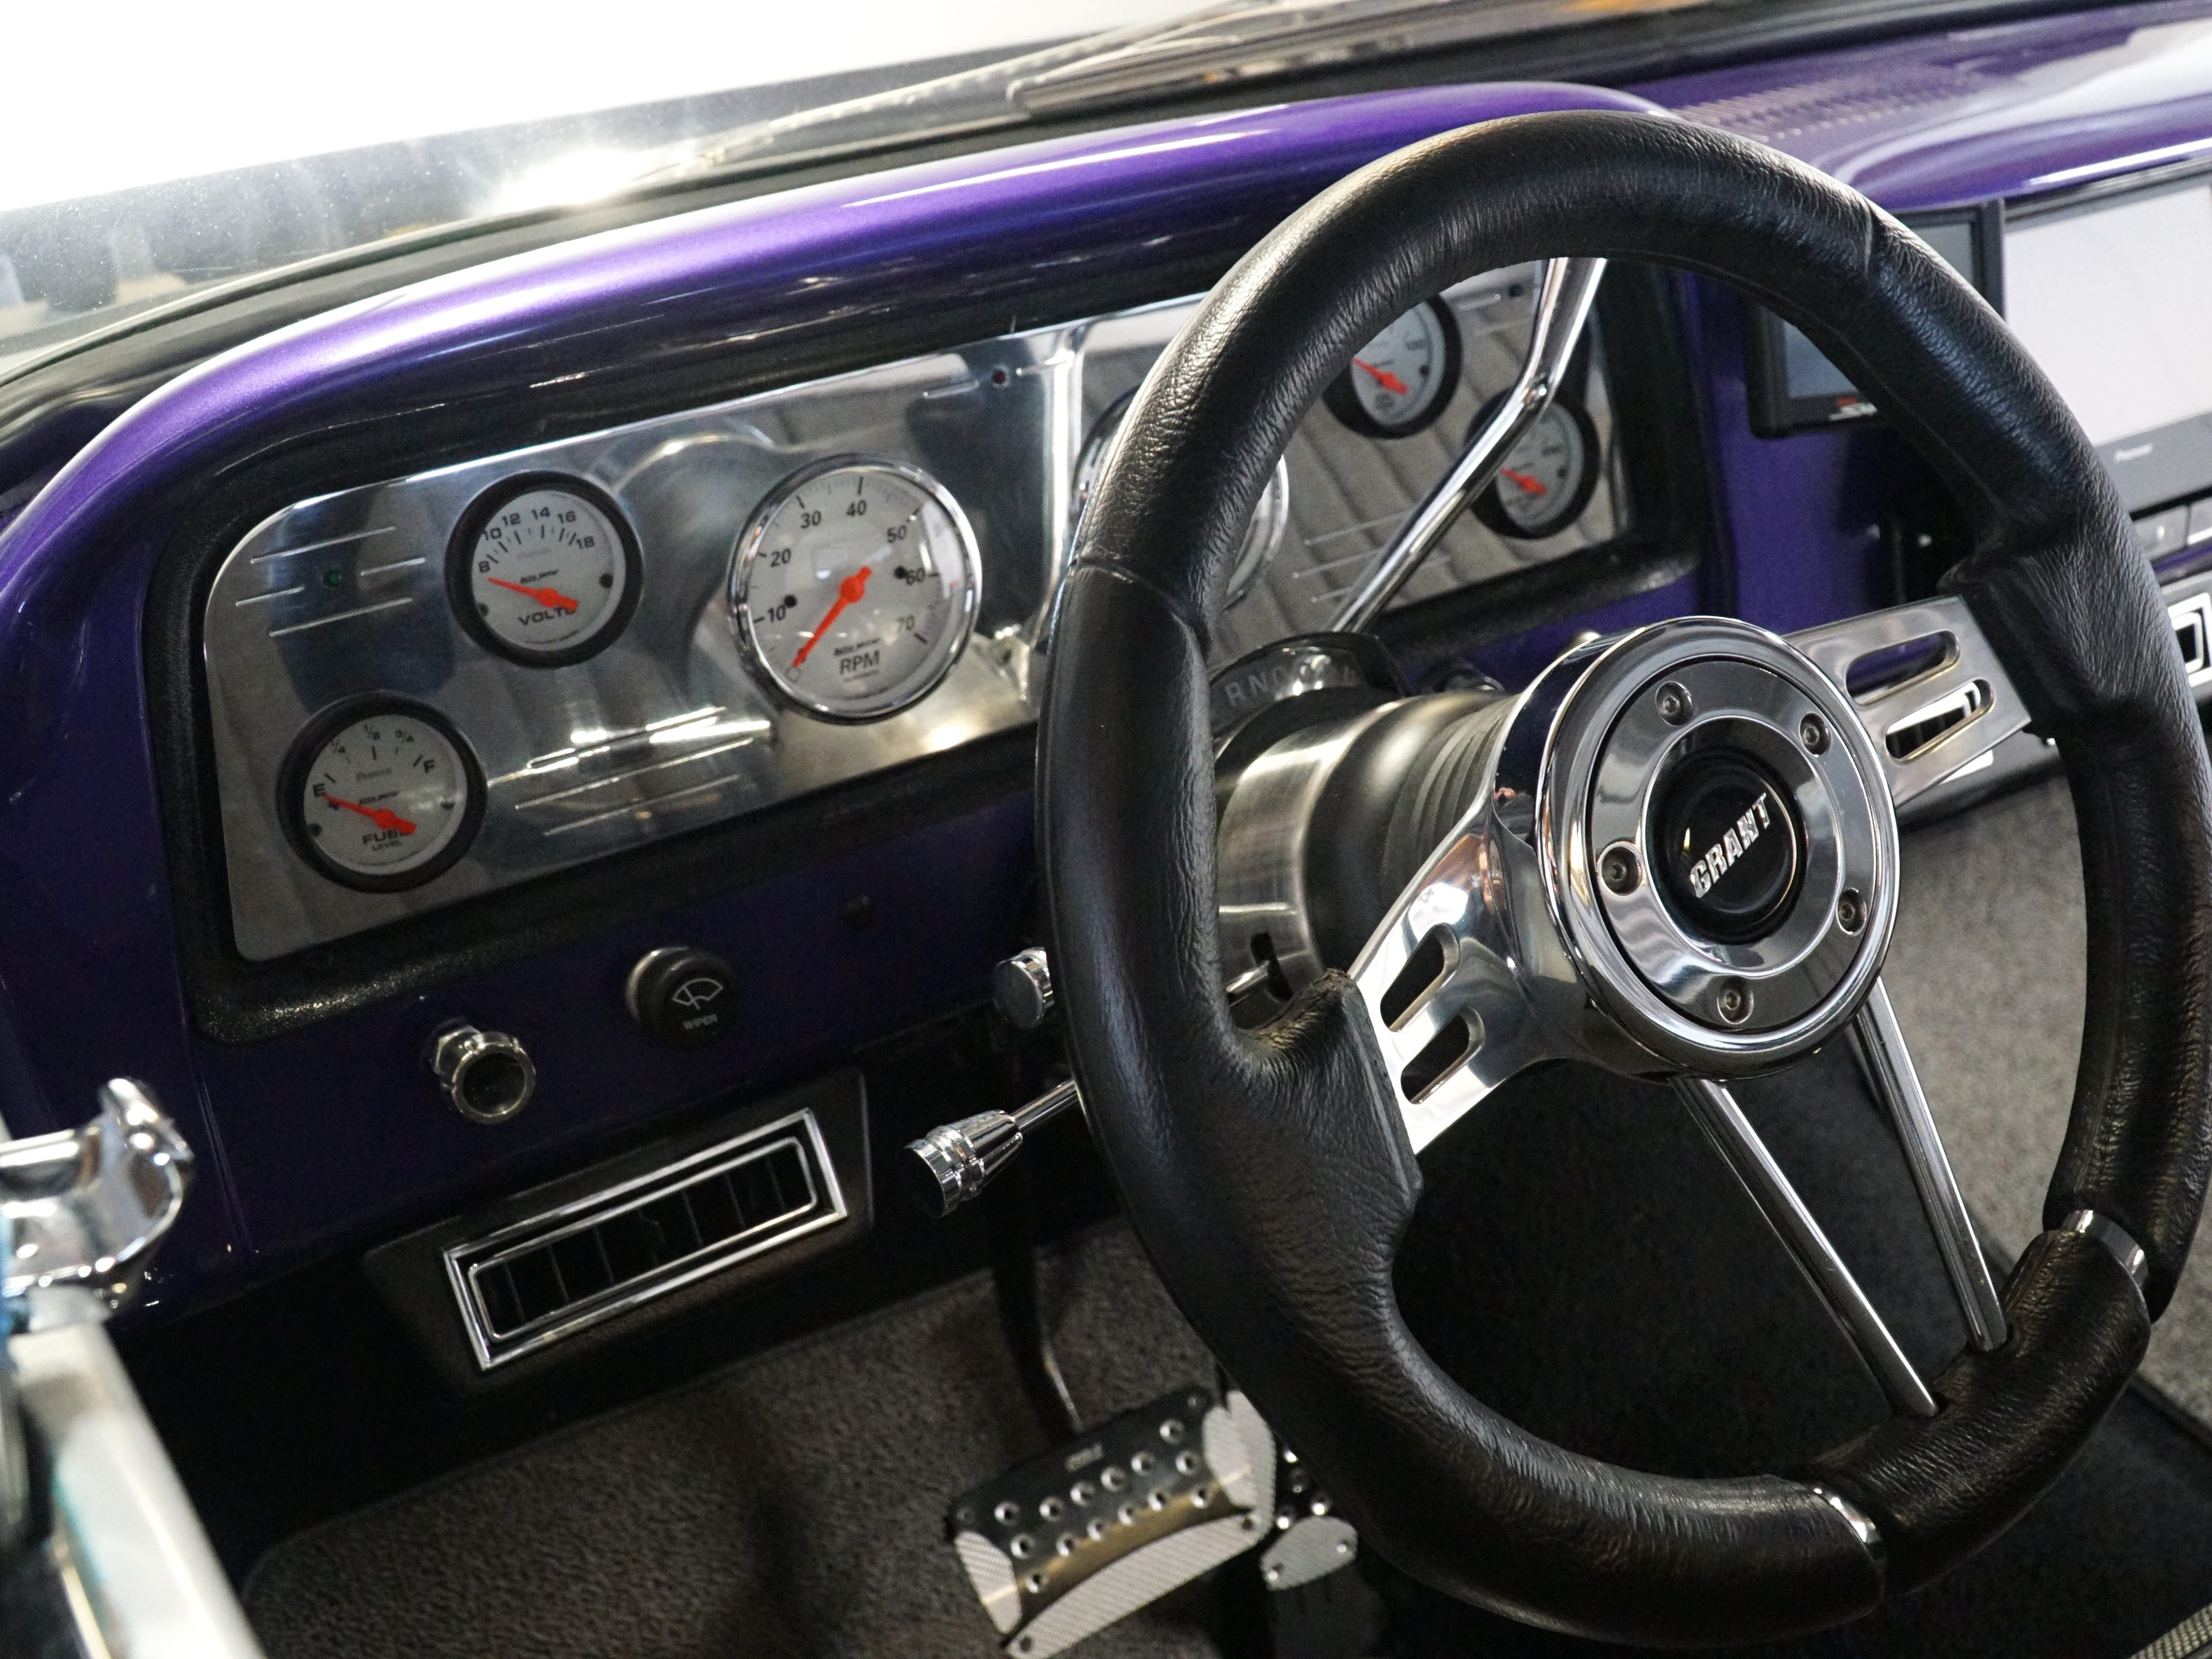 The Coleman's '65 GMC pickup truck's dashboard. The vehicle also features a 700 R4 overdrive transmission.